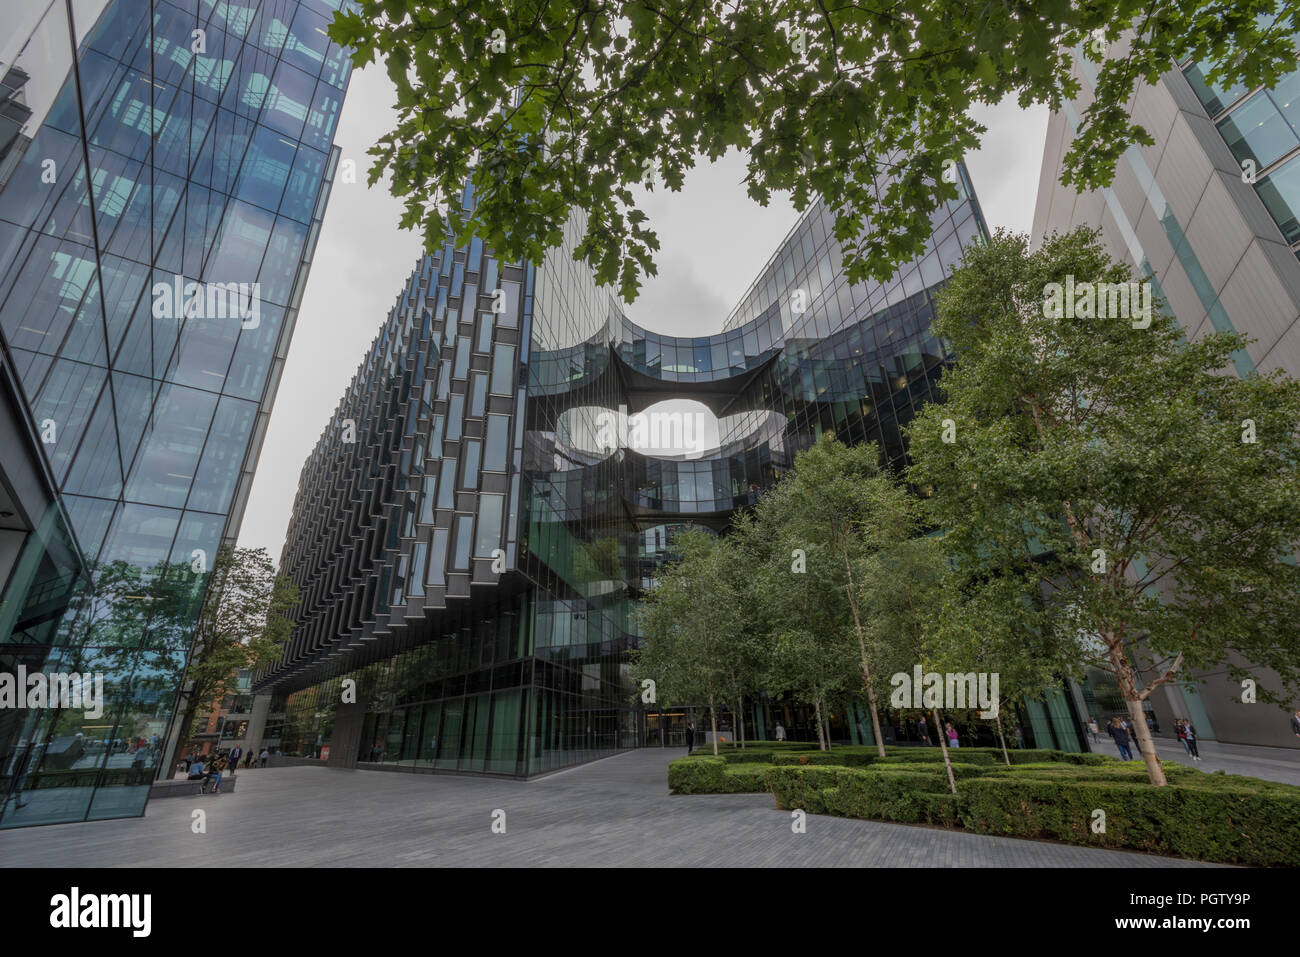 modern offices and businesses based at more London place on the south bank of the river thames in the centre of the city of London, uk. - Stock Image